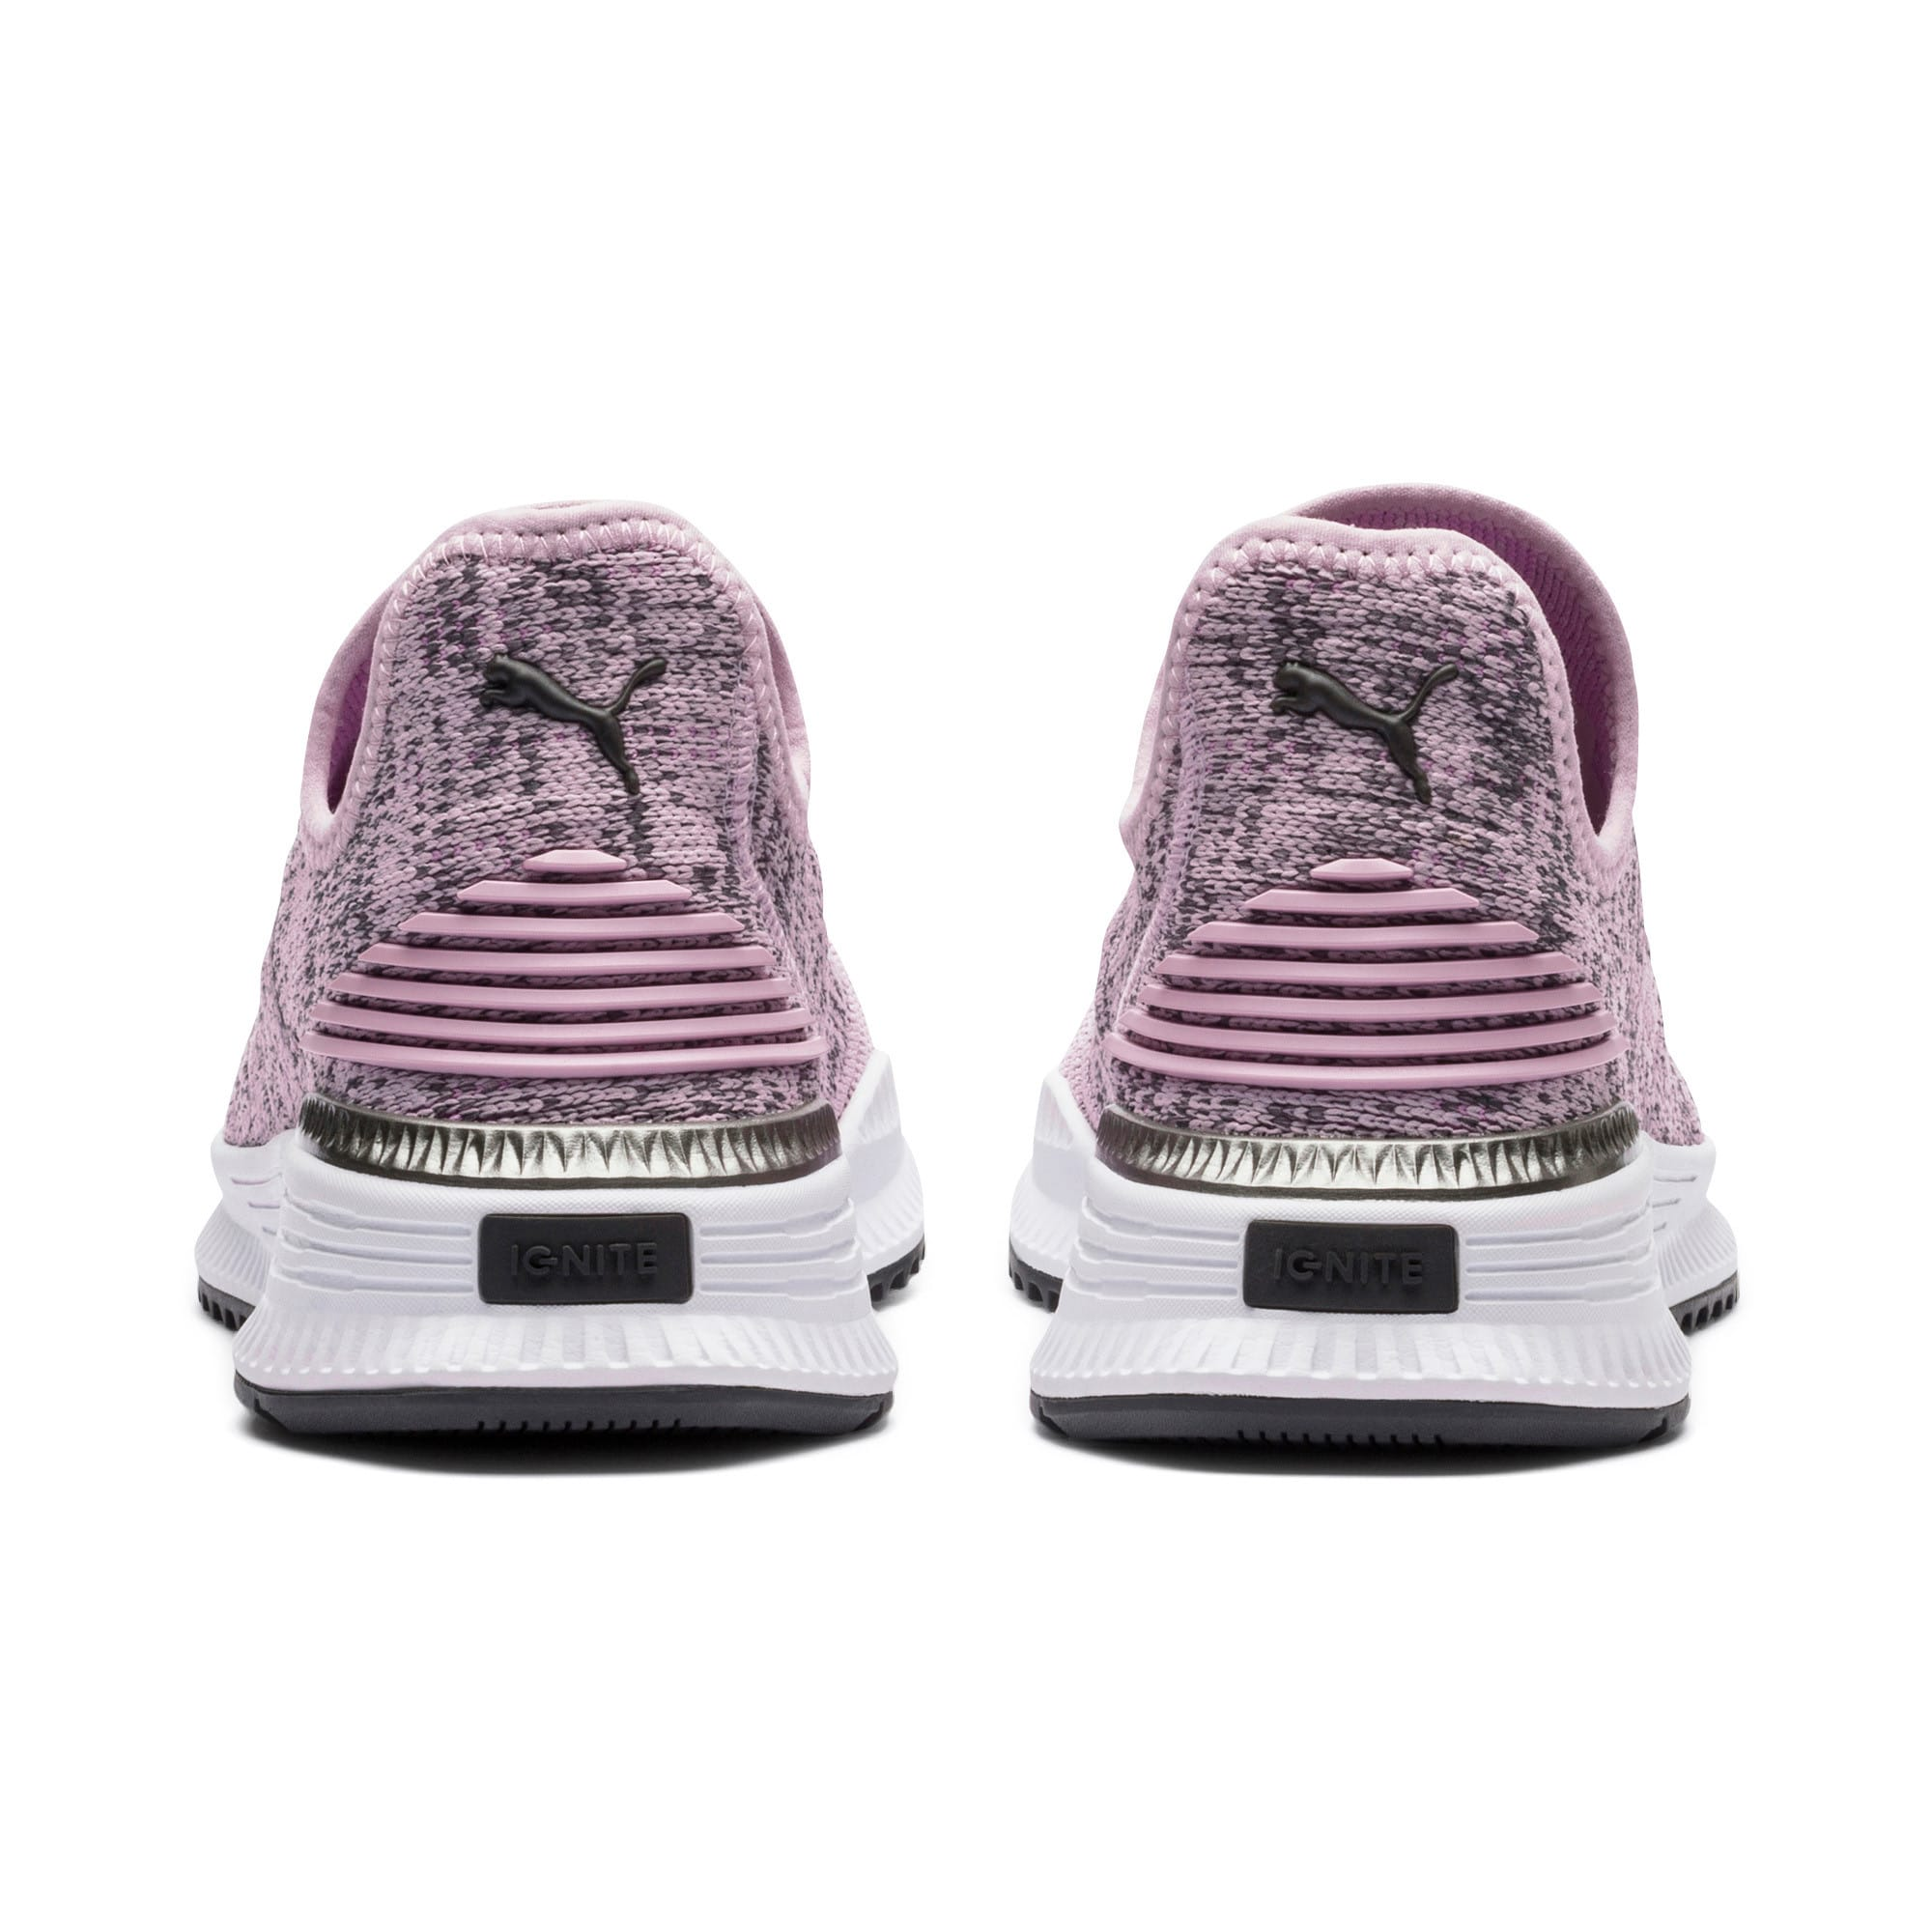 Thumbnail 4 of AVID evoKNIT Mosaic Women's Sneakers, WOrchid-IGate-Orchid, medium